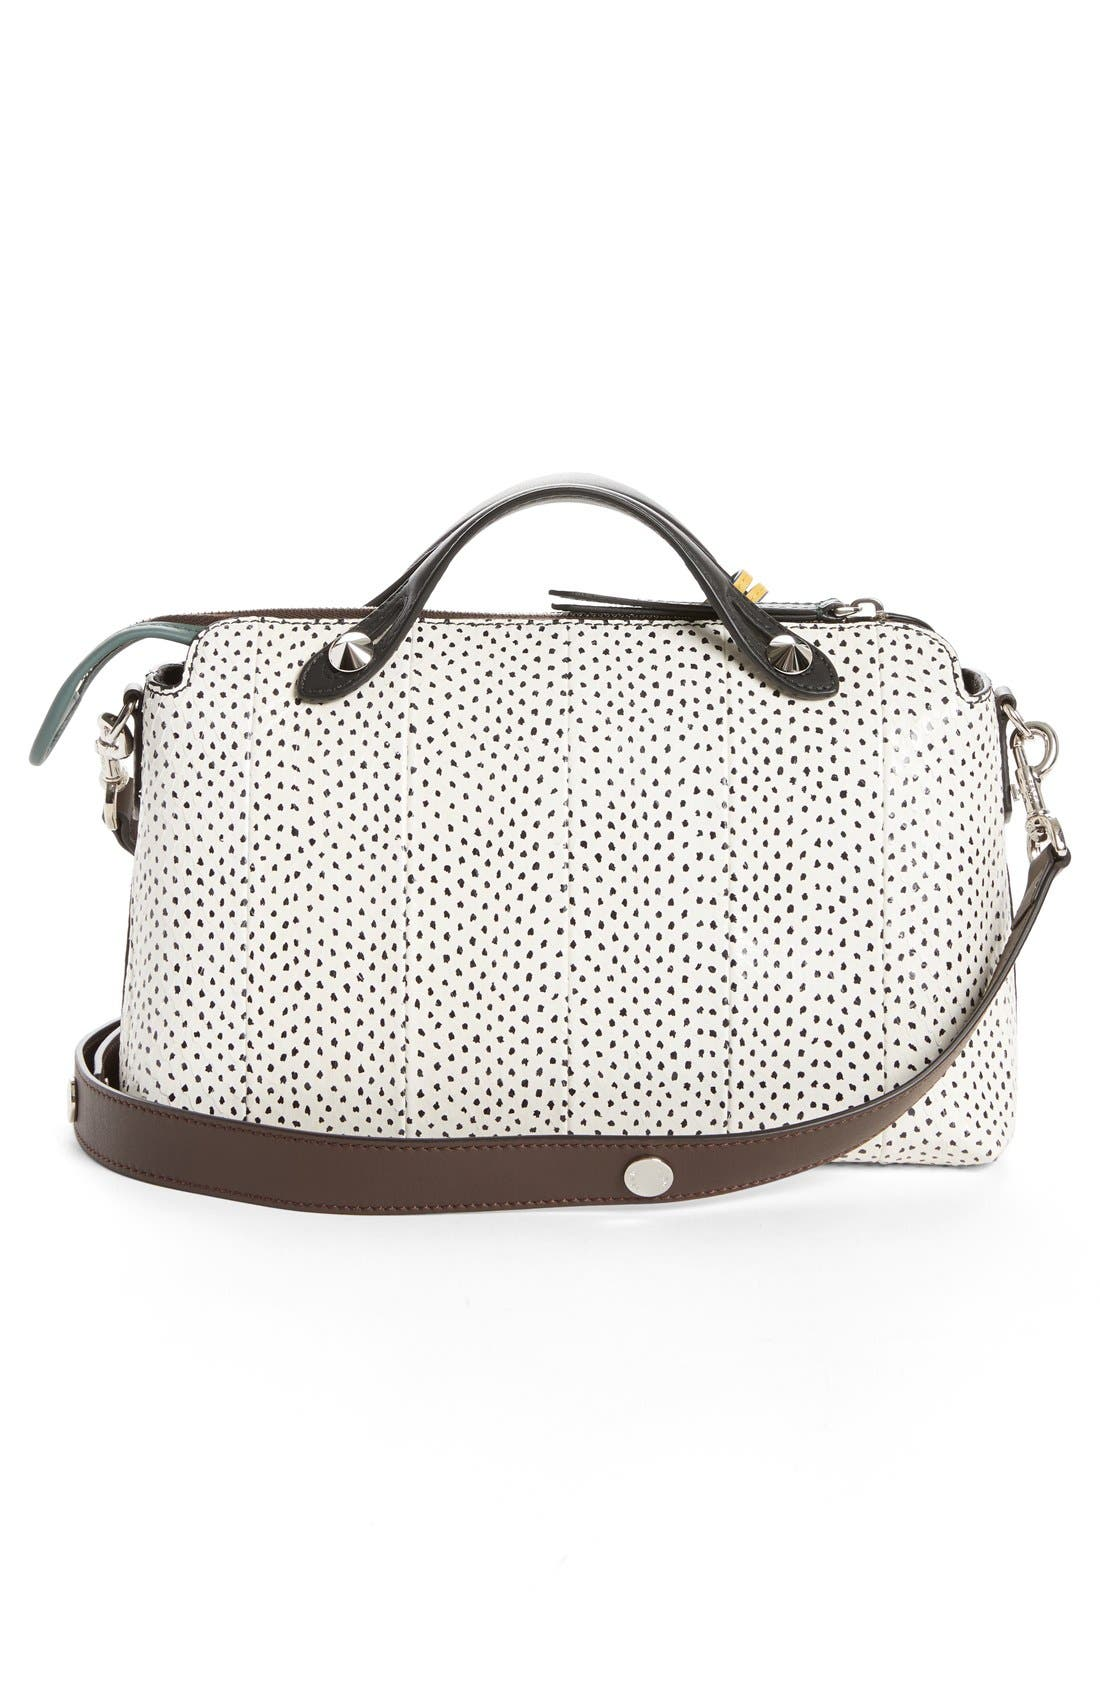 Medium By the Way Genuine Snakeskin Satchel,                             Alternate thumbnail 4, color,                             143